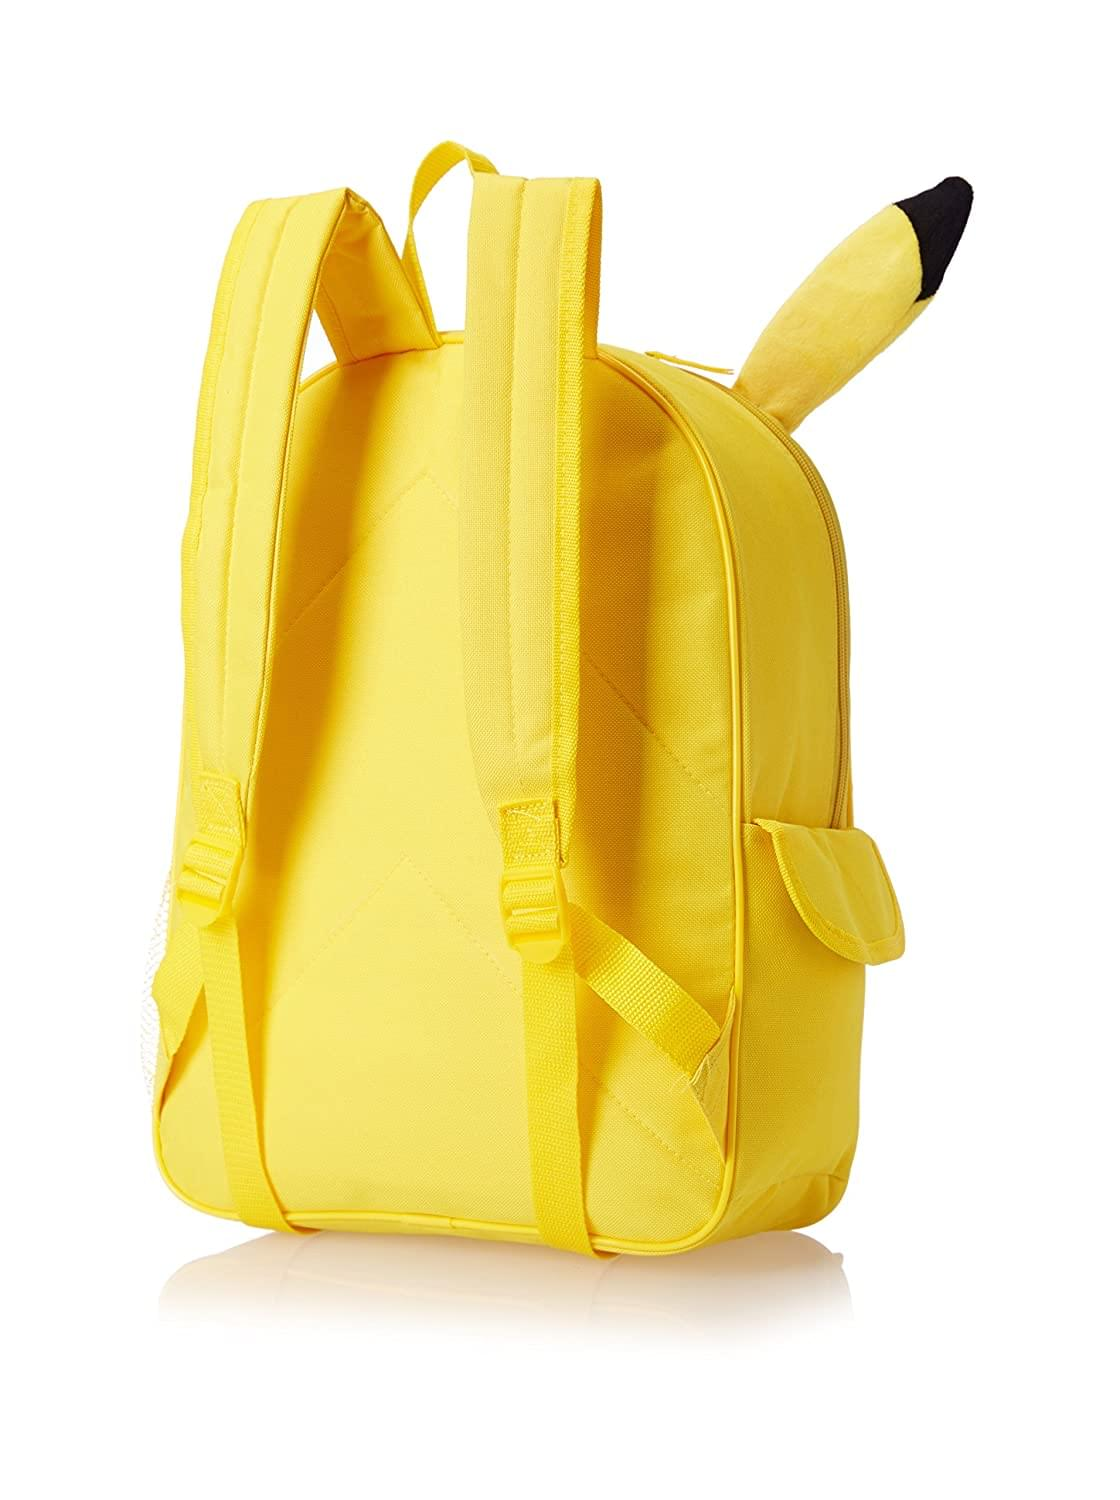 Pokemon Pikachu 3D 16 Inch Backpack